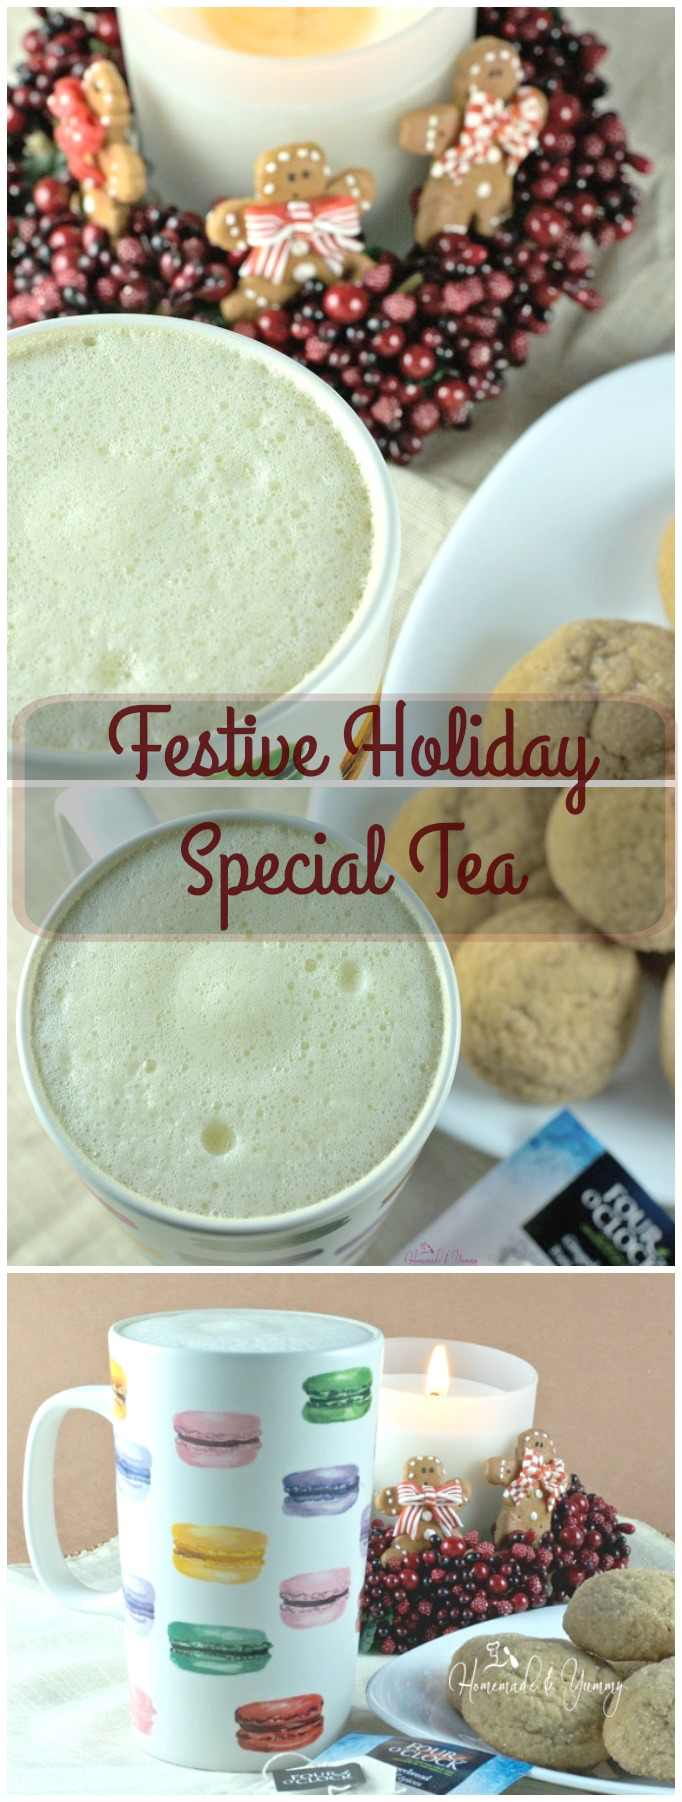 Festive Holiday Special Tea long pin image.